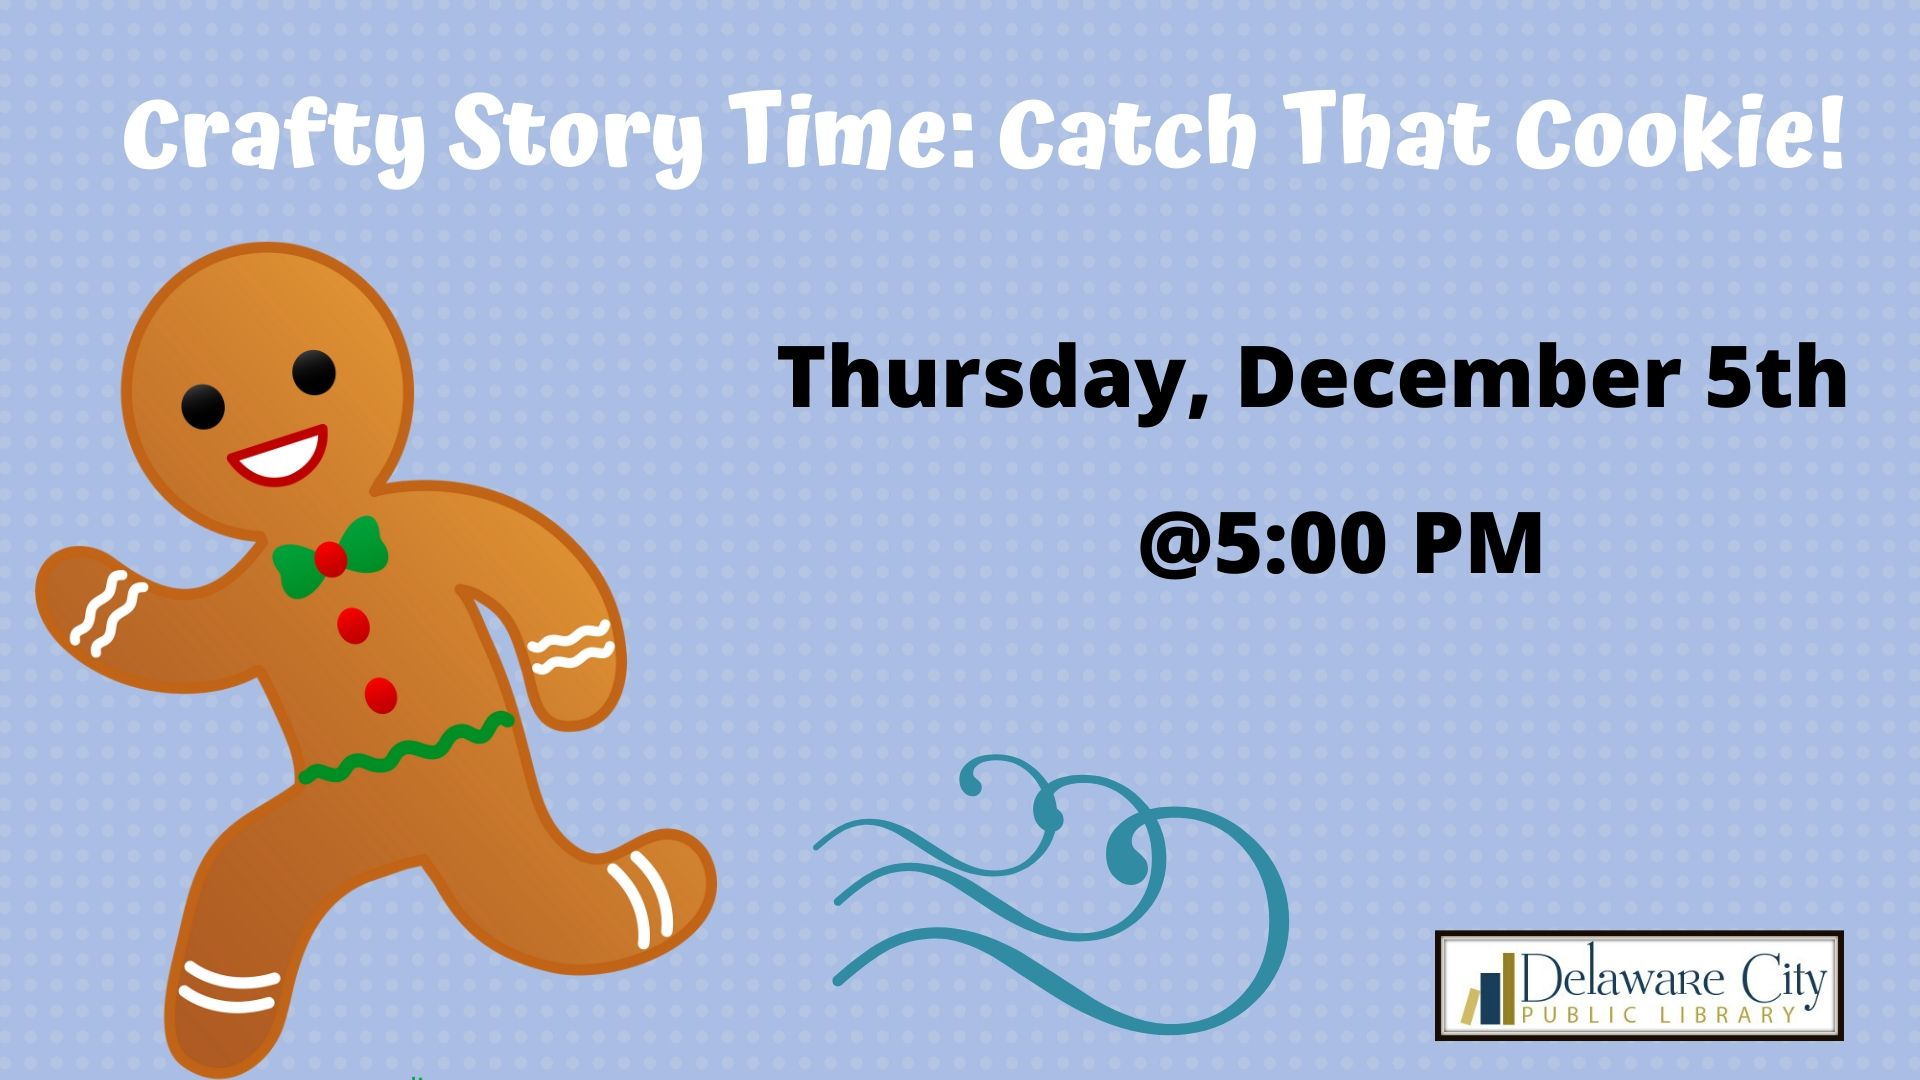 Crafty Story Time: Catch That Cookie